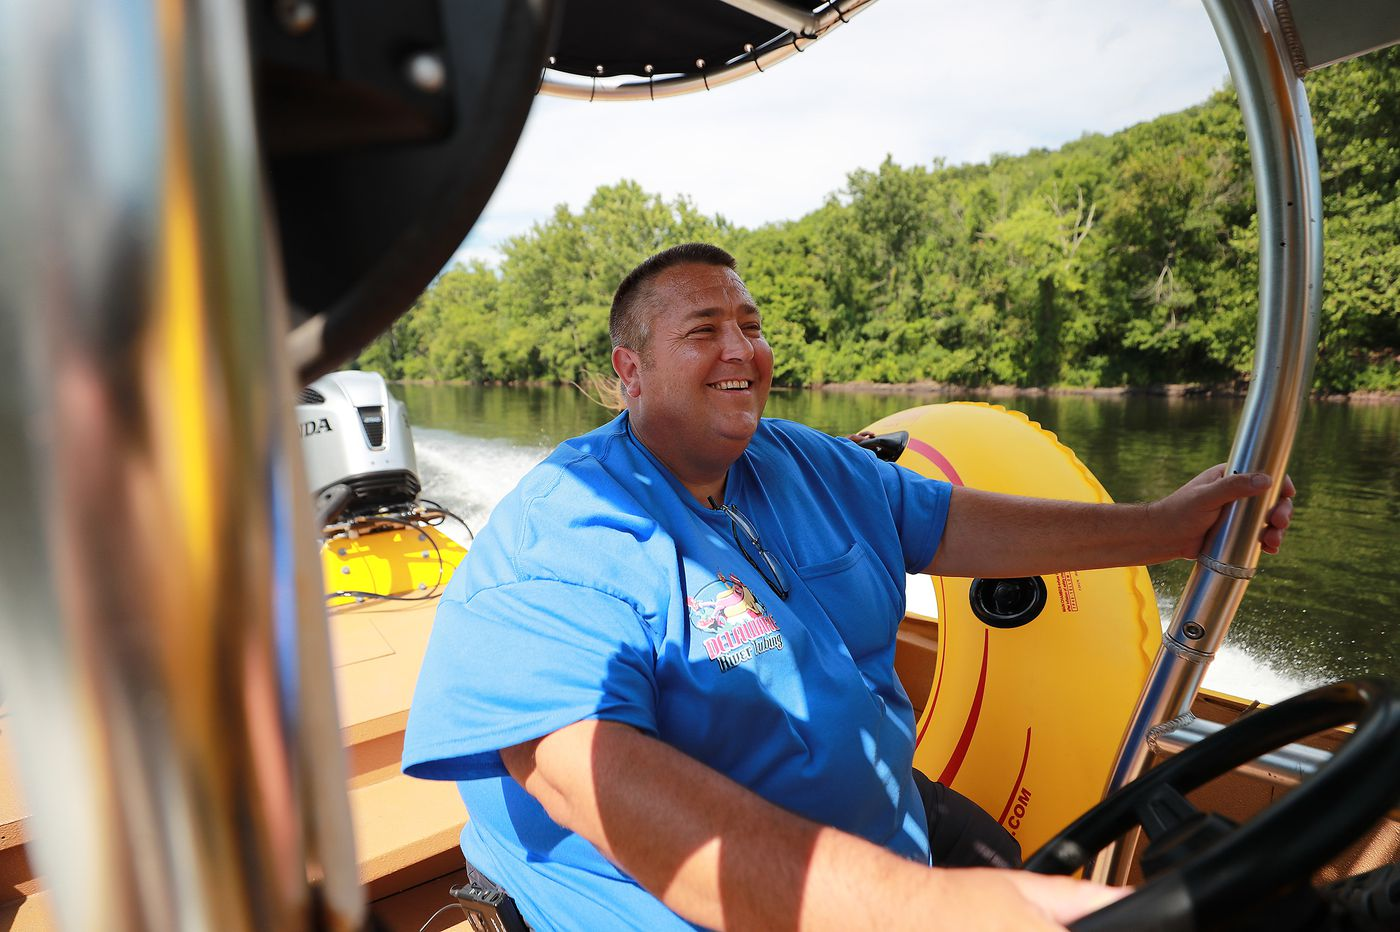 Famous River Hot Dog Man keeps tubers afloat and well-fed on the Delaware